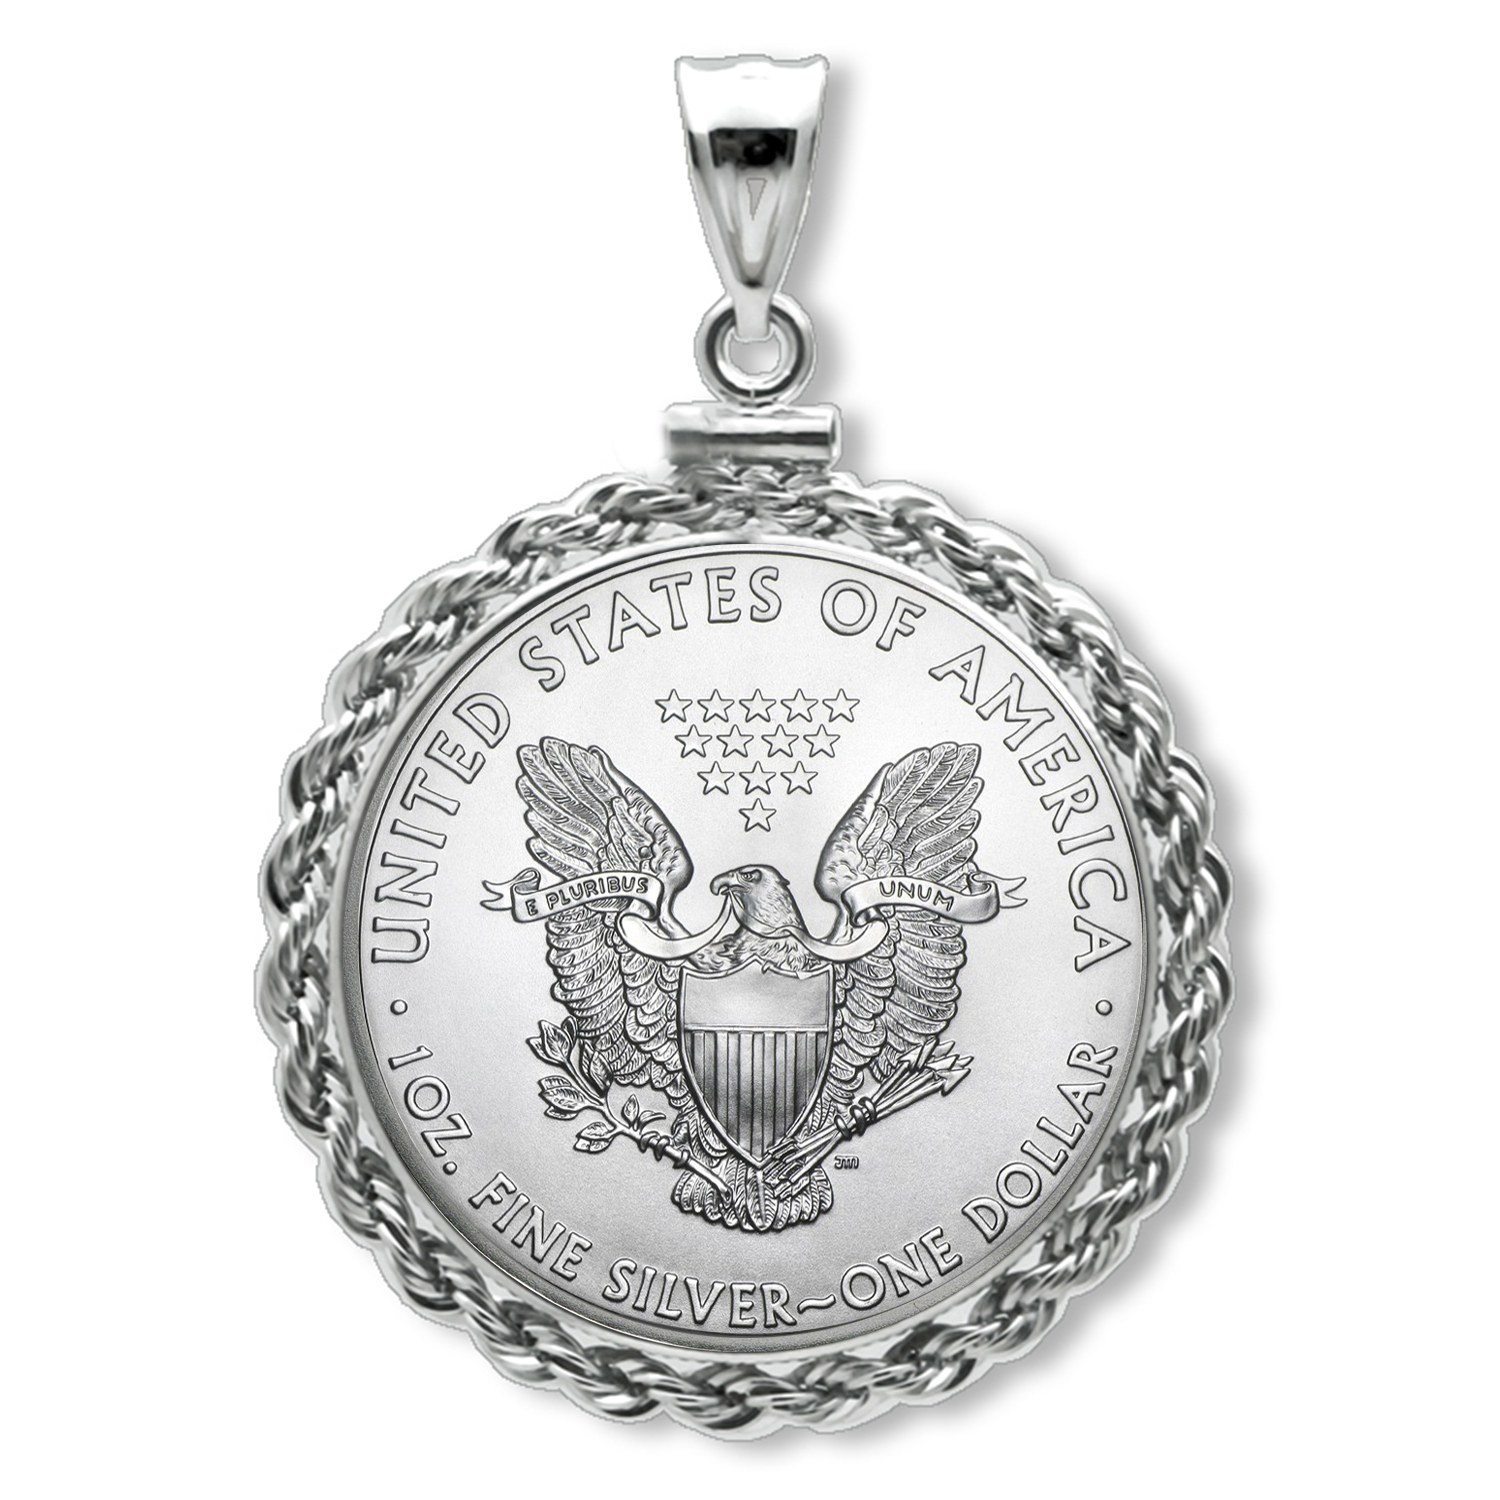 2016 1 oz Silver Eagle Pendant (Rope-ScrewTop Bezel)